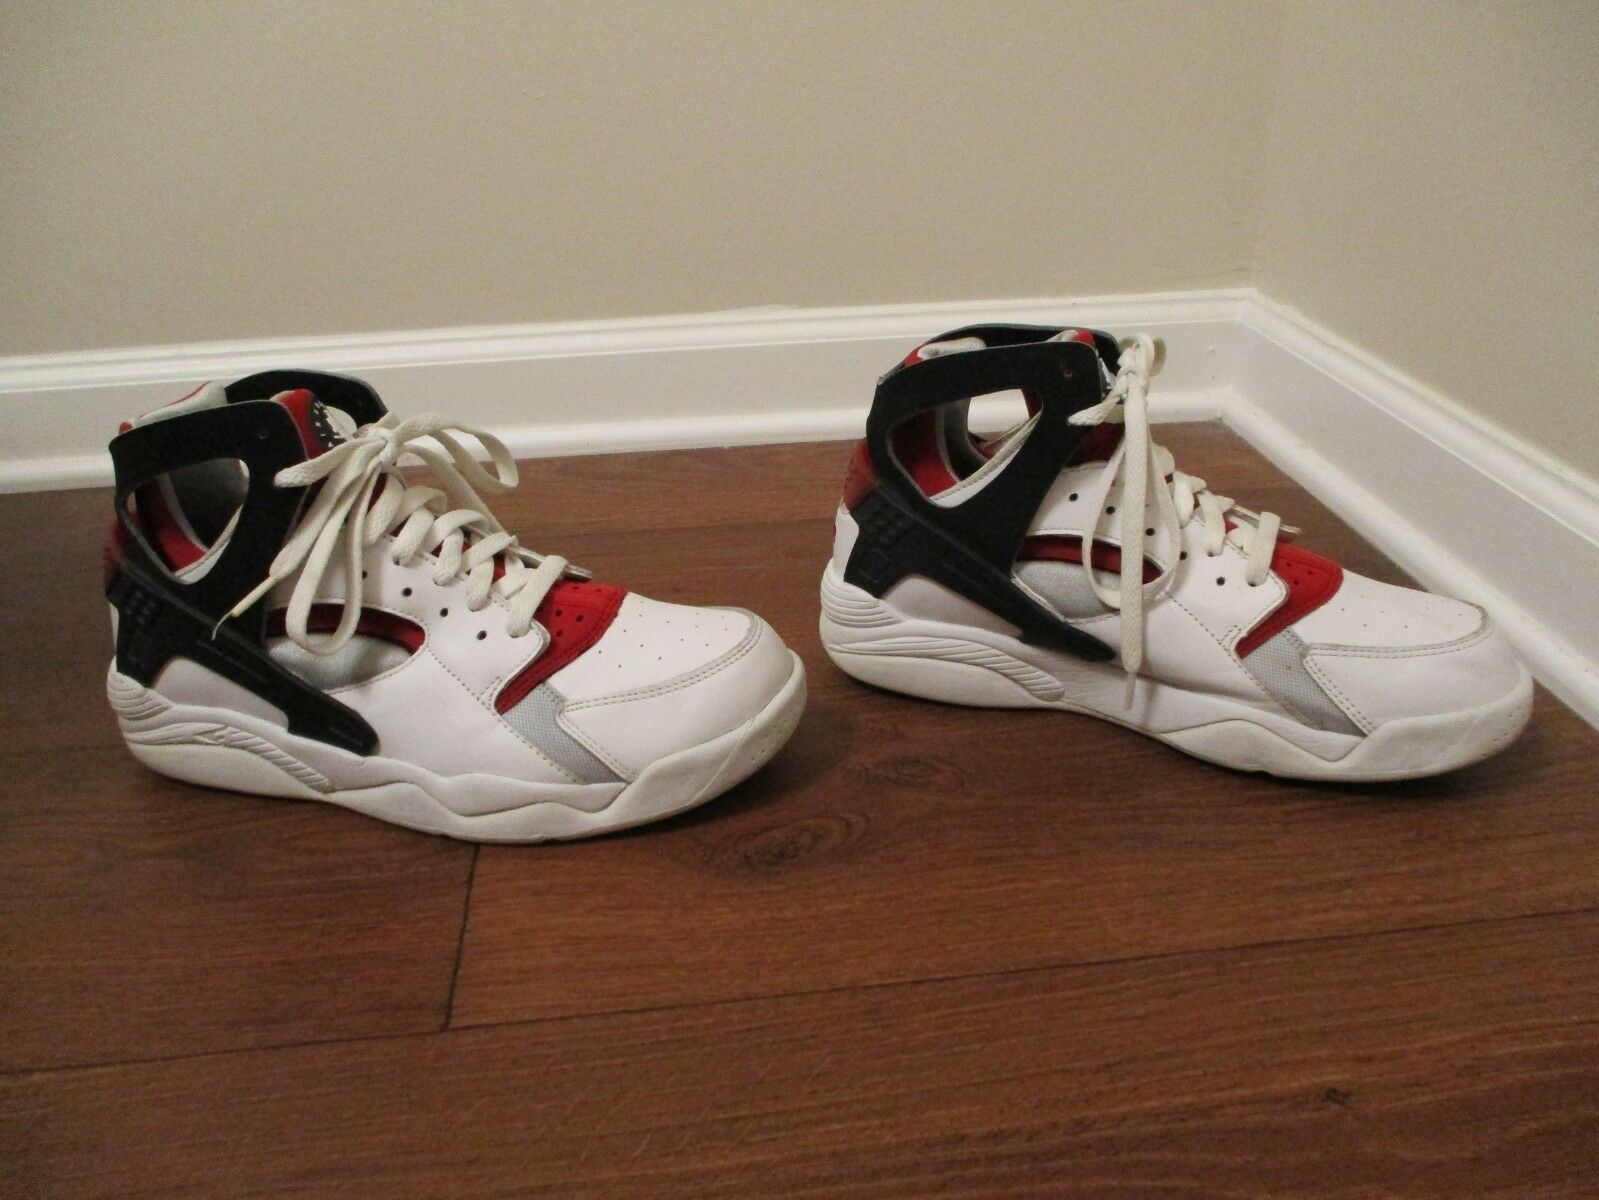 Classic 2003 Used Worn Size 11 Nike Air Flight Huarache shoes White Black Red